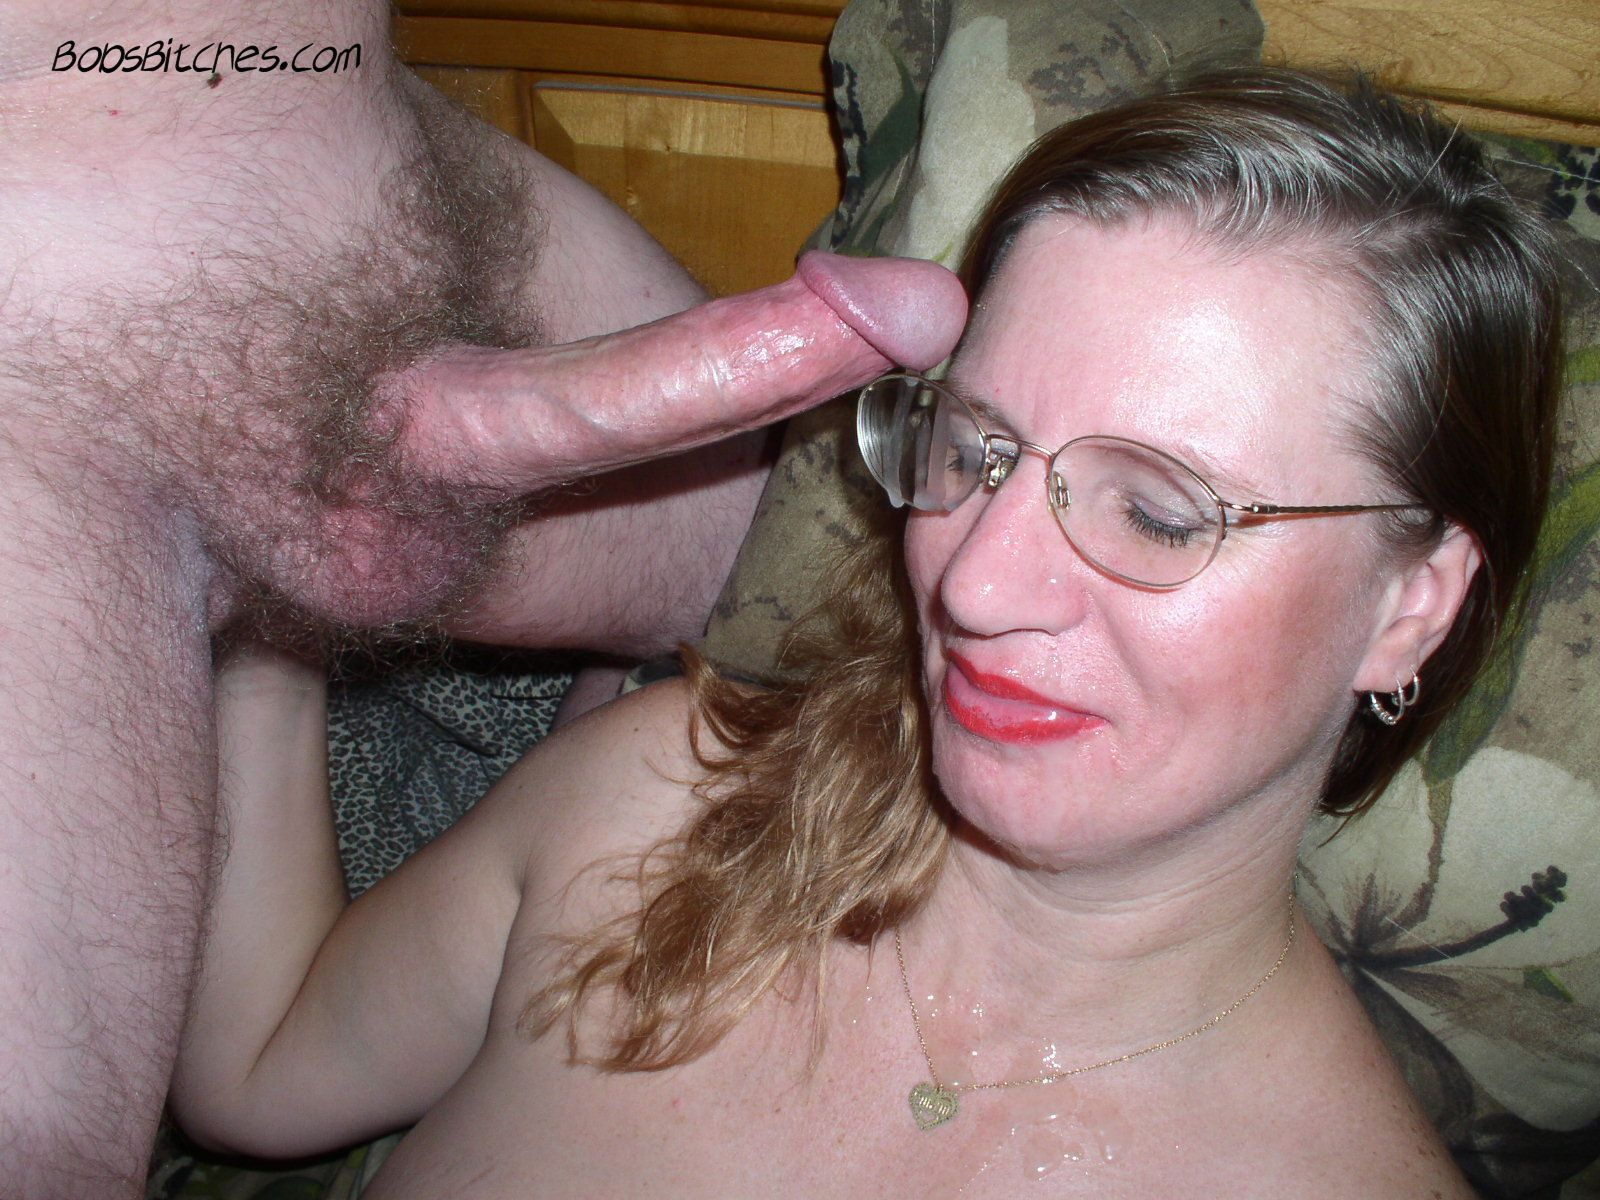 Milf Karen is in bed, wearing glasses while sucking cock and takes a load of cum on her face.